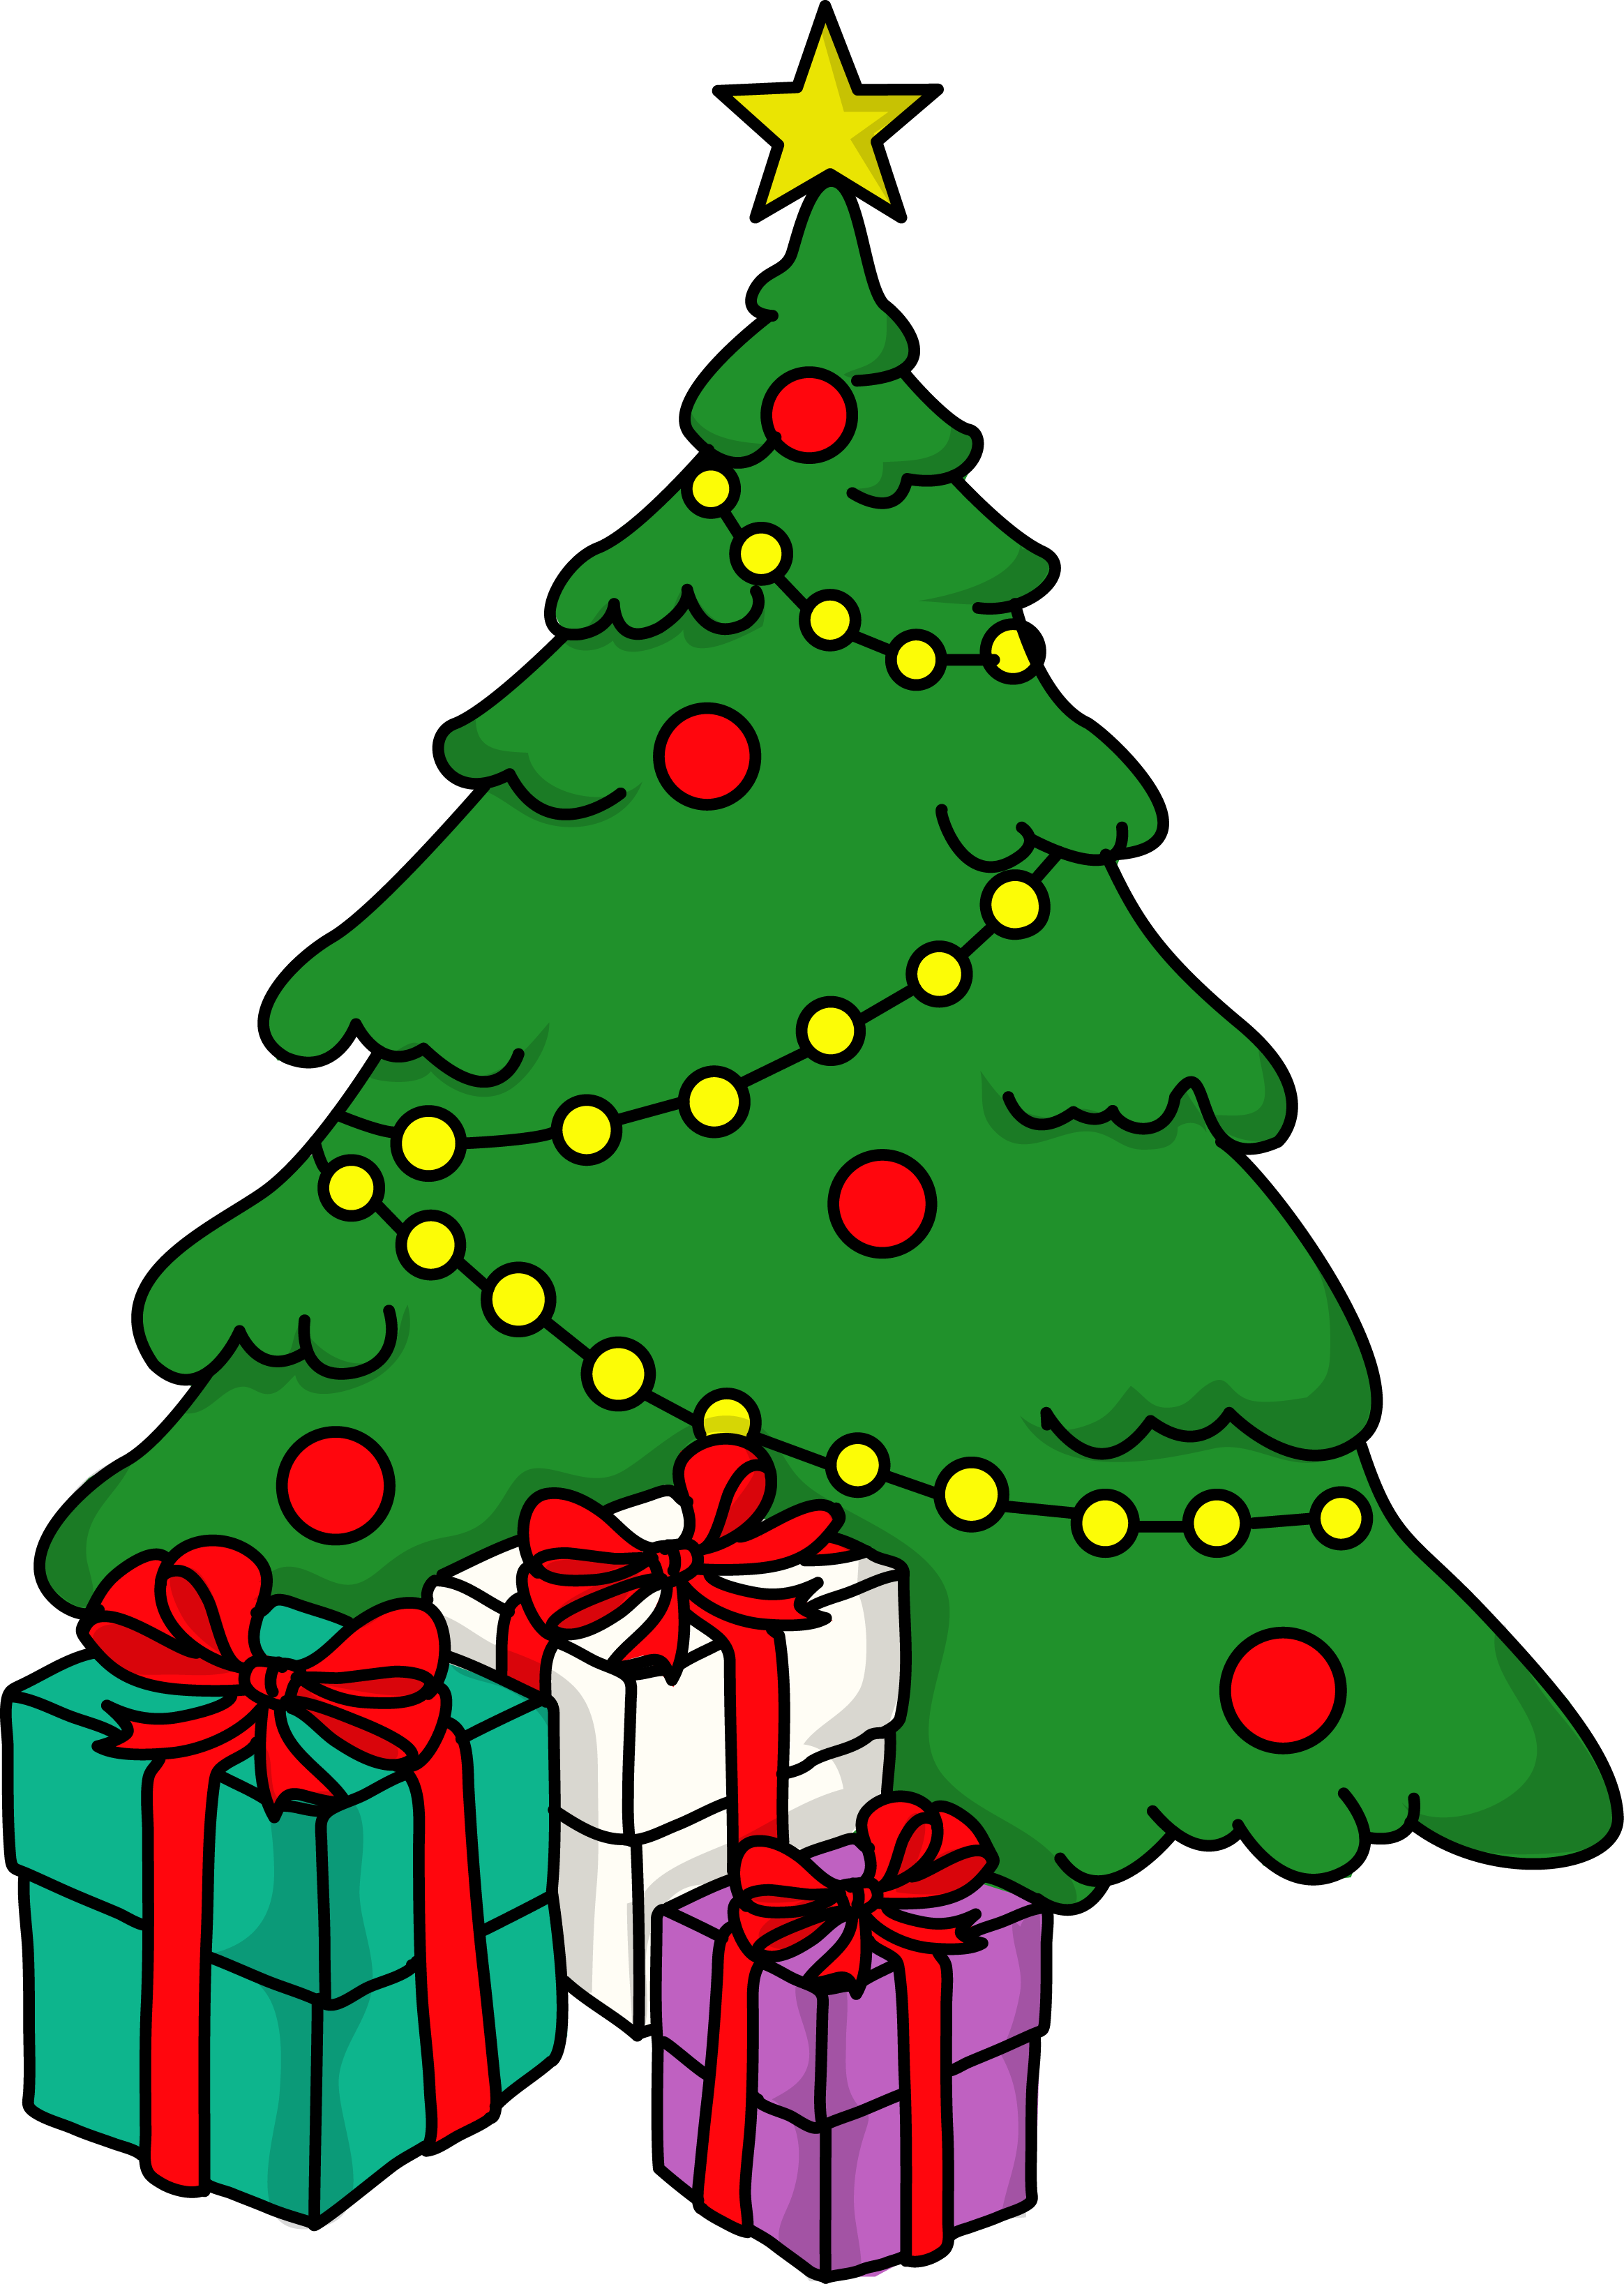 Free christmas heart clipart graphic download Free Celebrate Christmas Cliparts, Download Free Clip Art, Free Clip ... graphic download